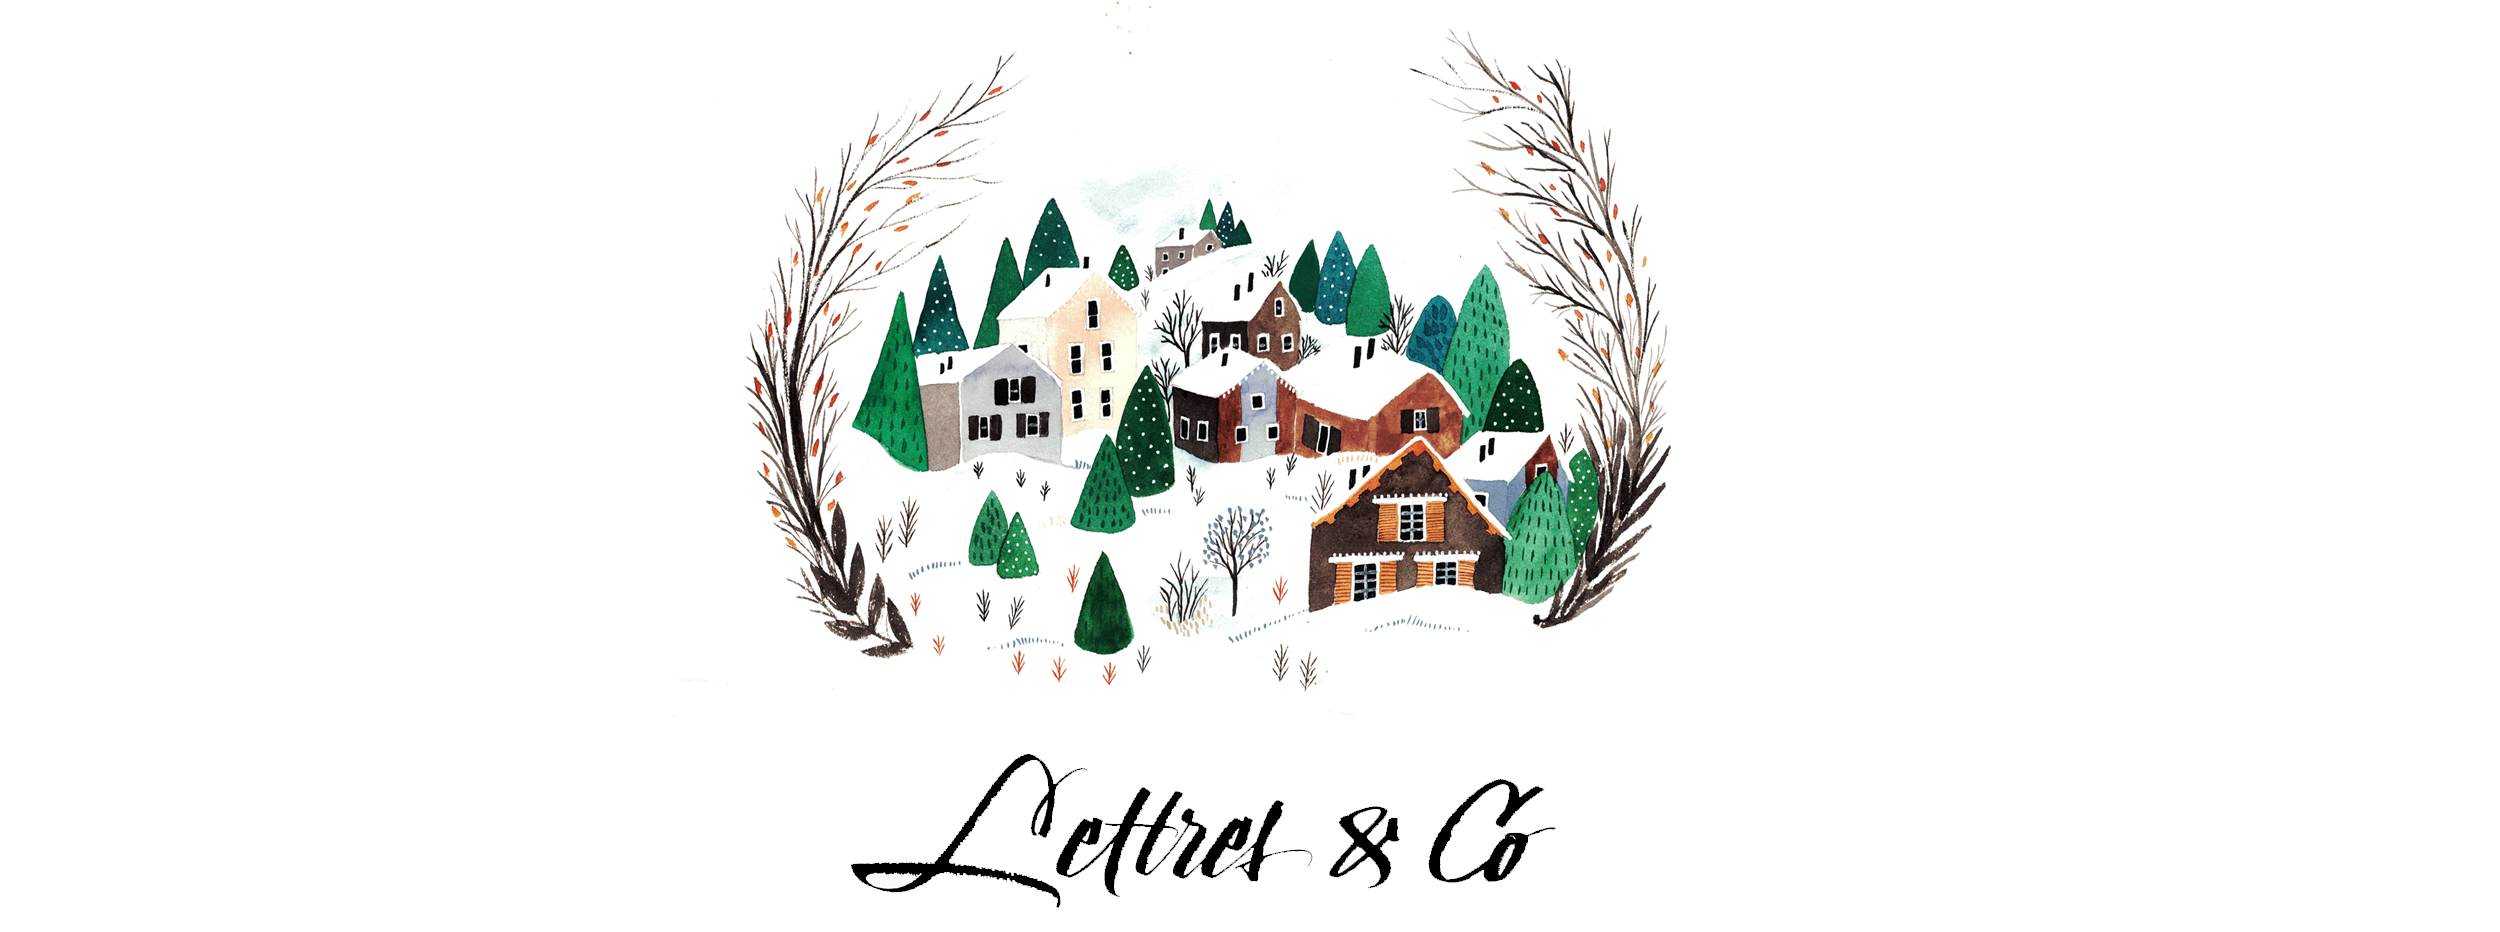 Lettres & Co